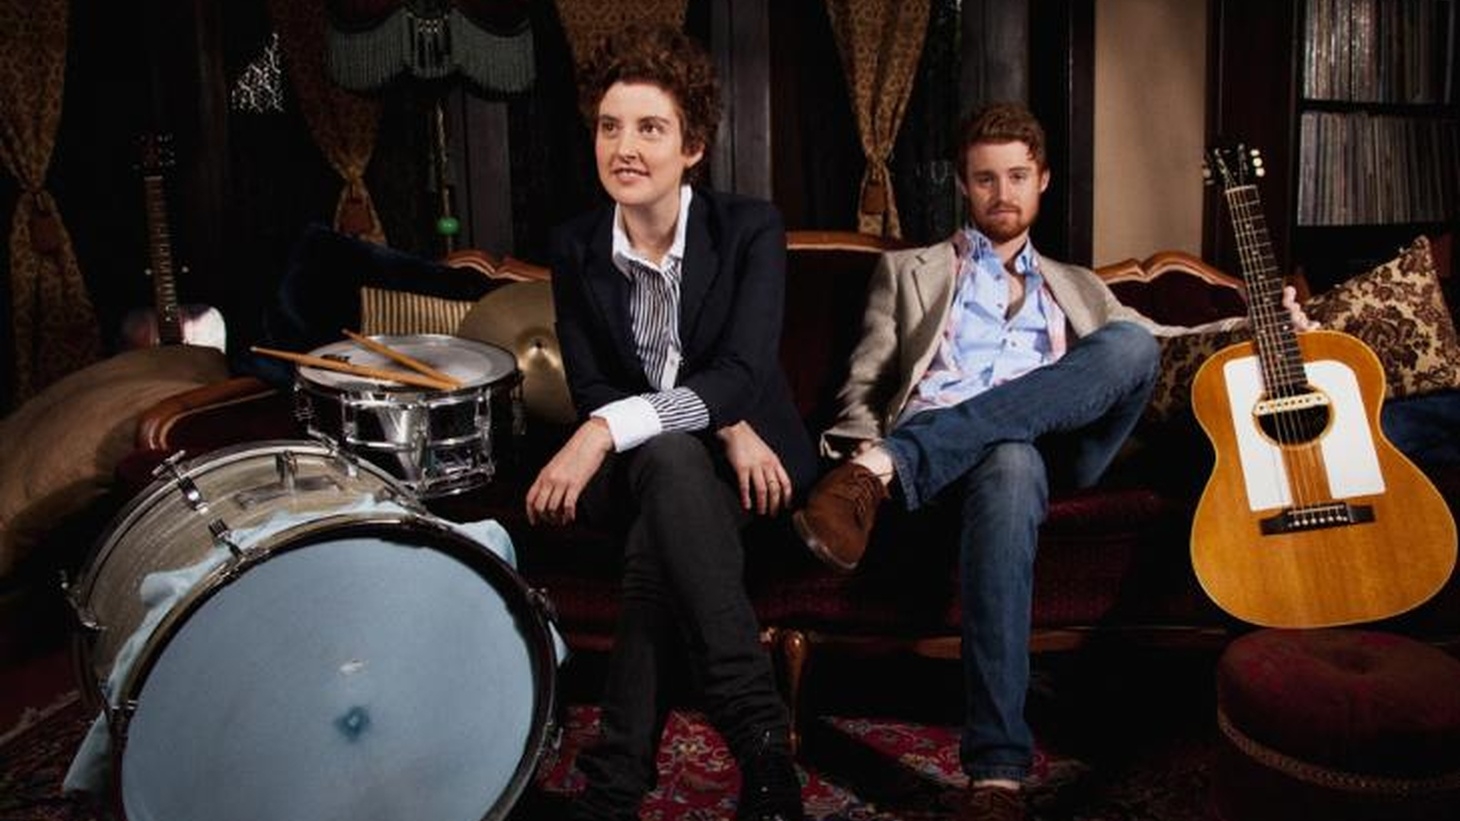 """Siblings Barbara and Ethan Gruska grew up in a musical family that includes their grandfather, composer John Williams. Their sweet harmonies shine through on Belle Brigade's """"Sweet Louise,"""" a highlight off their new album and Today's Top Tune."""